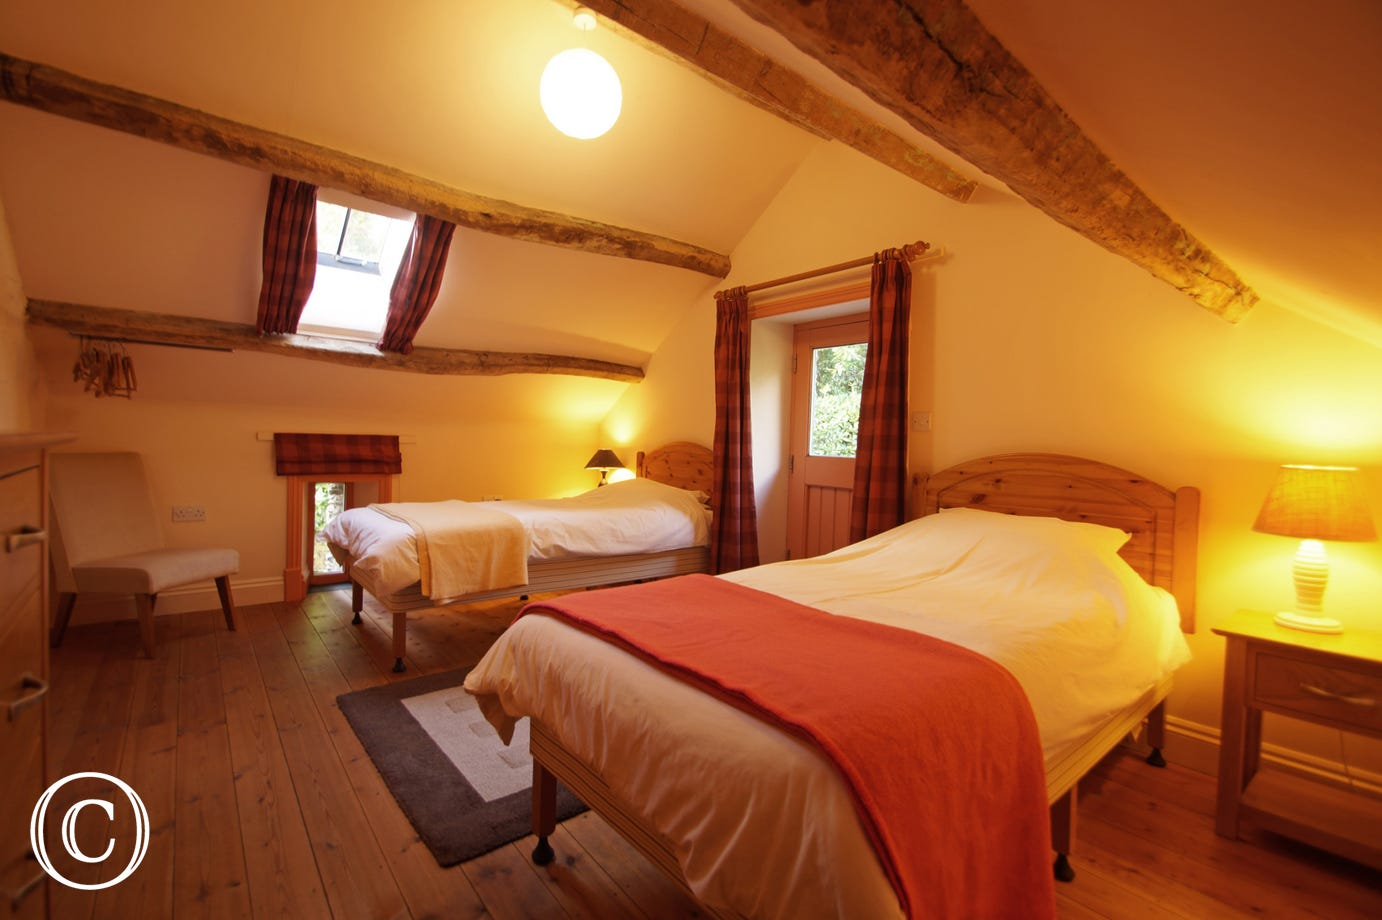 Granary bedroom - First twin bedded room with view on to the garden